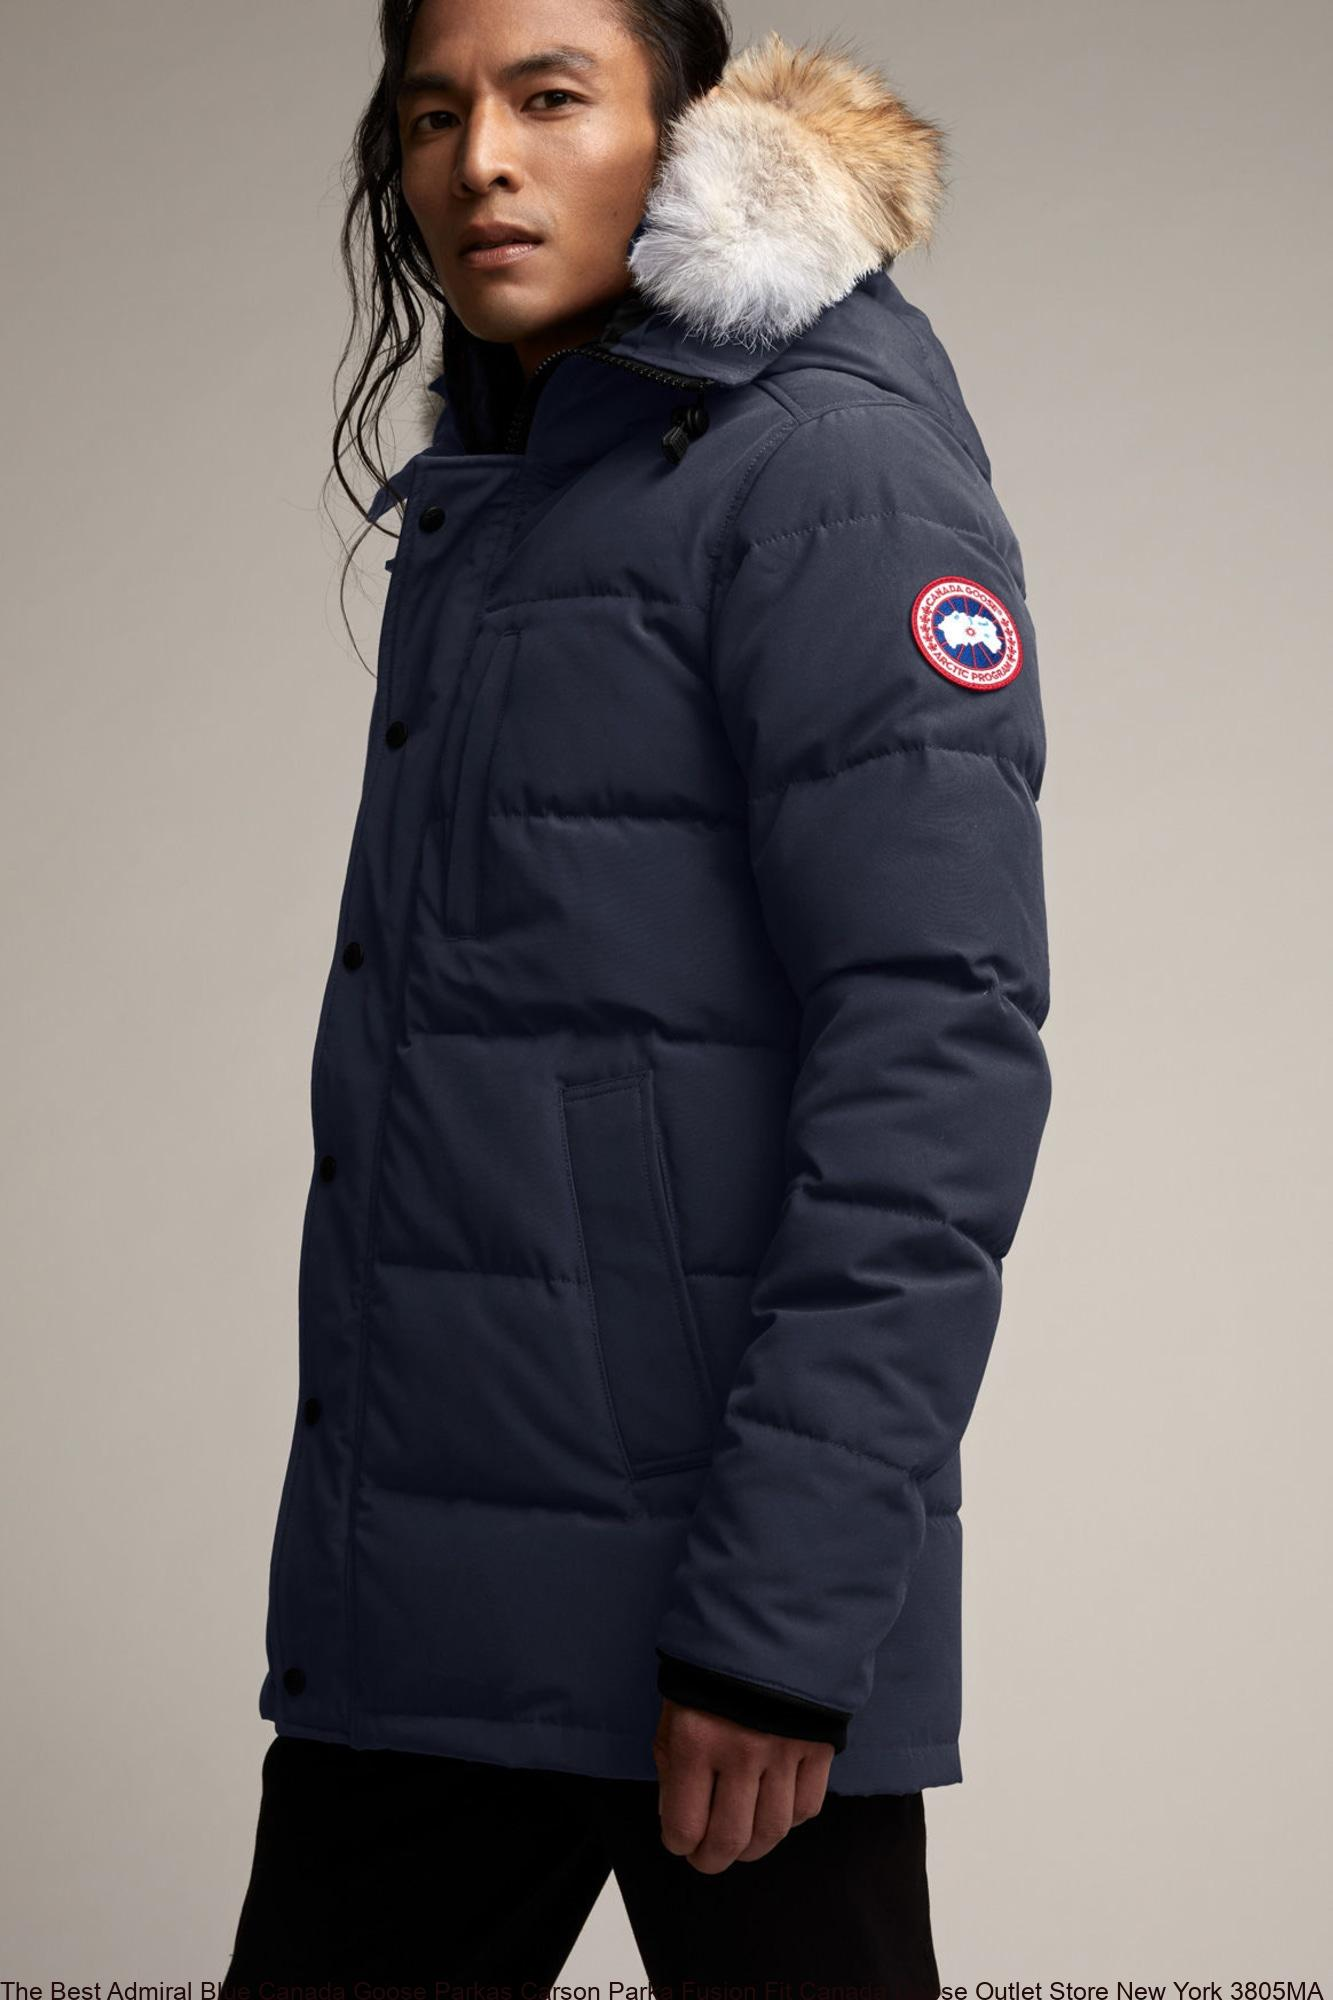 The Best Admiral Blue Canada Goose Parkas Carson Parka Fusion Fit Canada  Goose Outlet Store New York 3805MA – Cheap Canada Goose Outlet – canada  goose jacket black friday uk